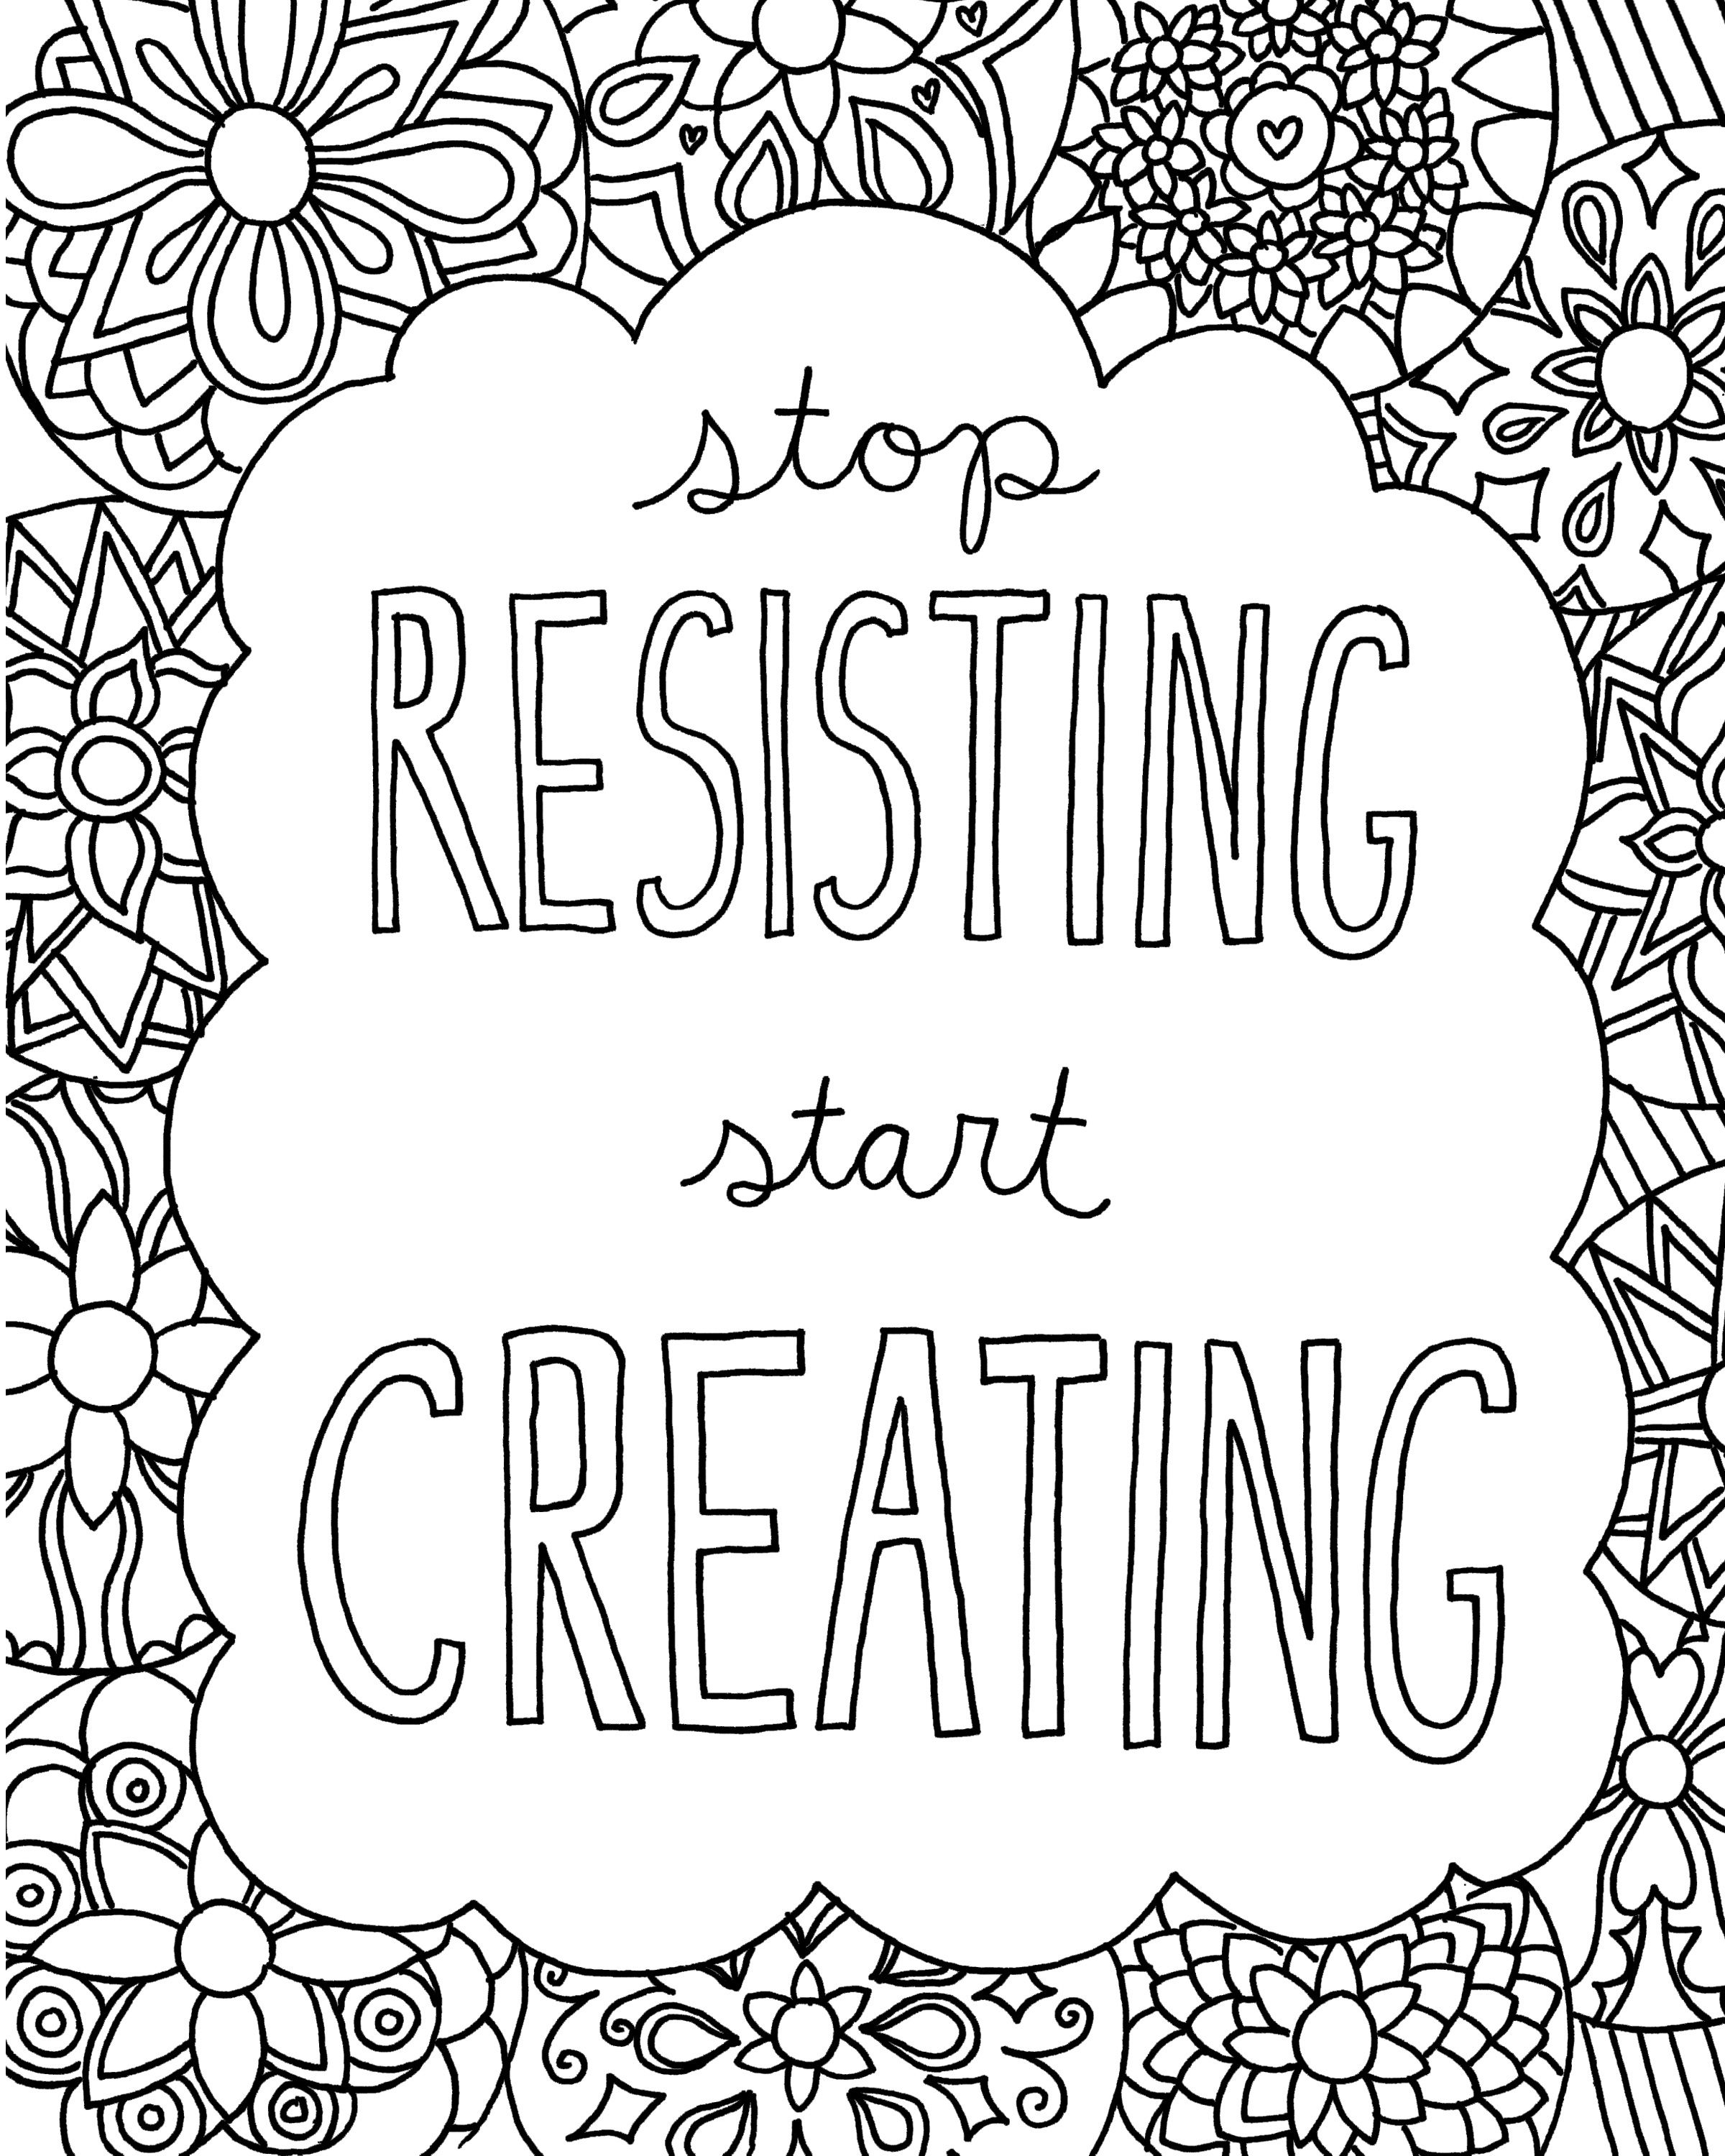 Free coloring book pages for grown ups quotes for your creativity